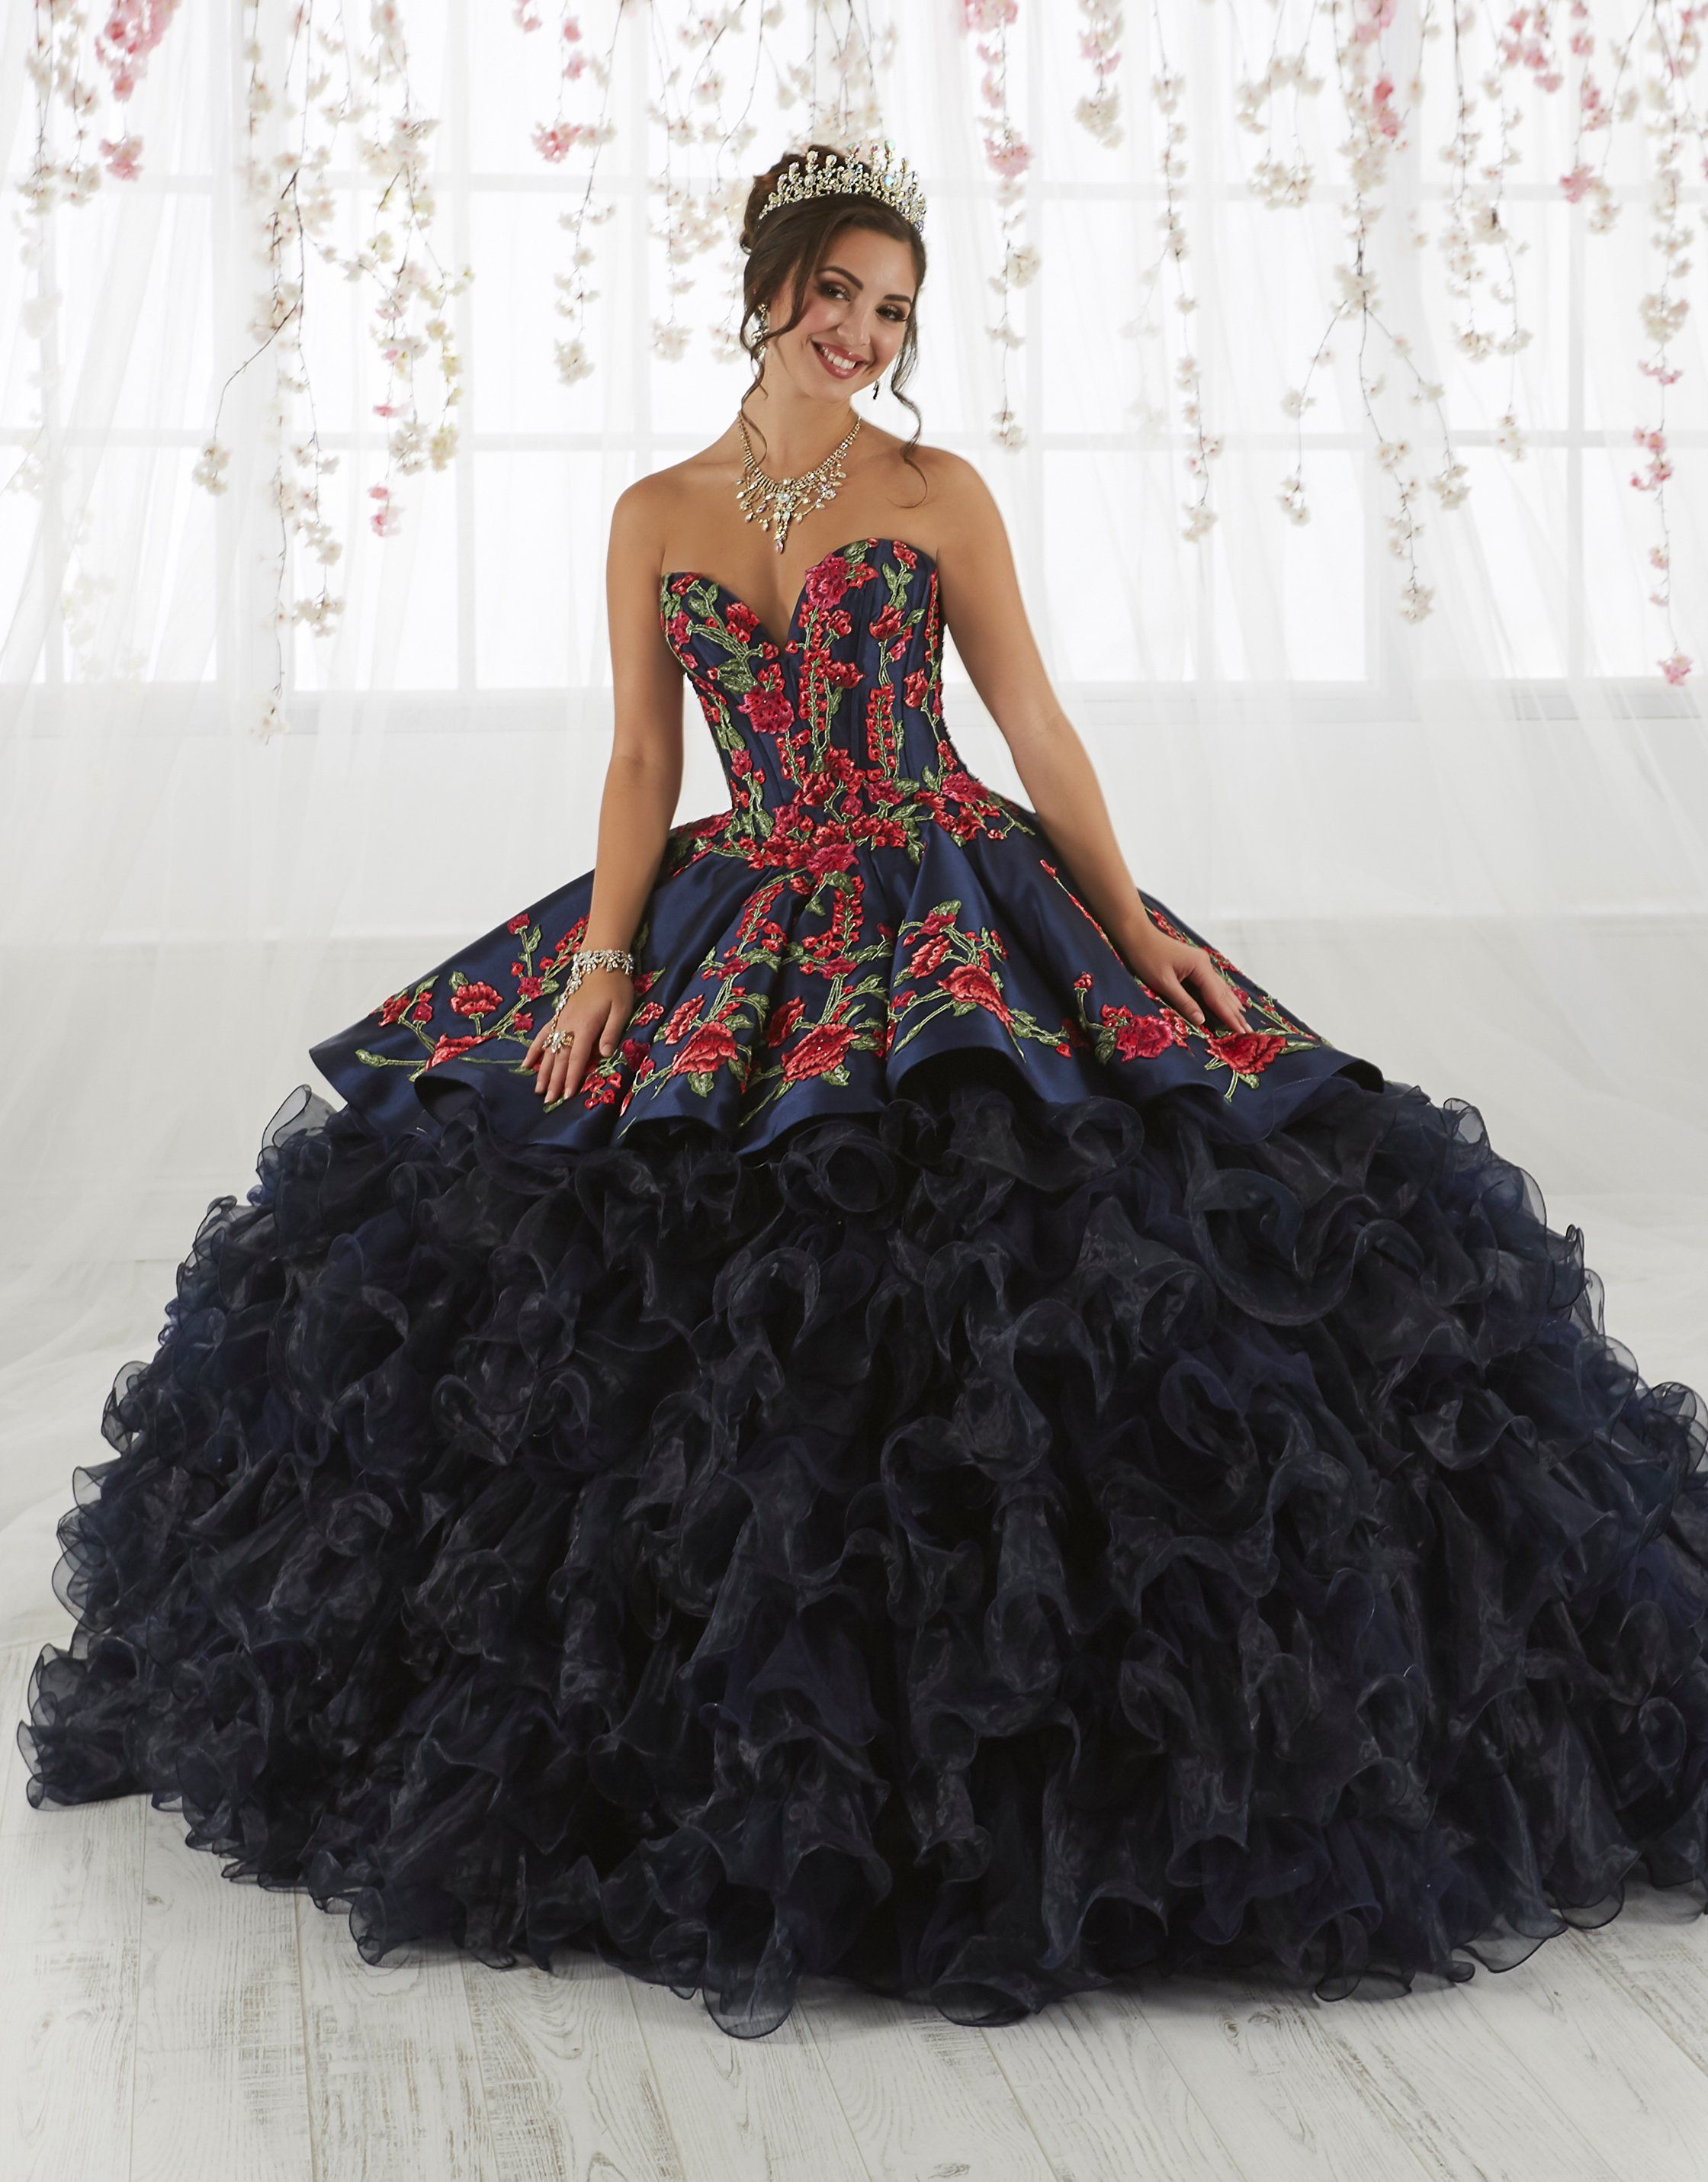 da06615c379d Rose Charro Quinceanera Dress by House of Wu 26892 in 2019 ...